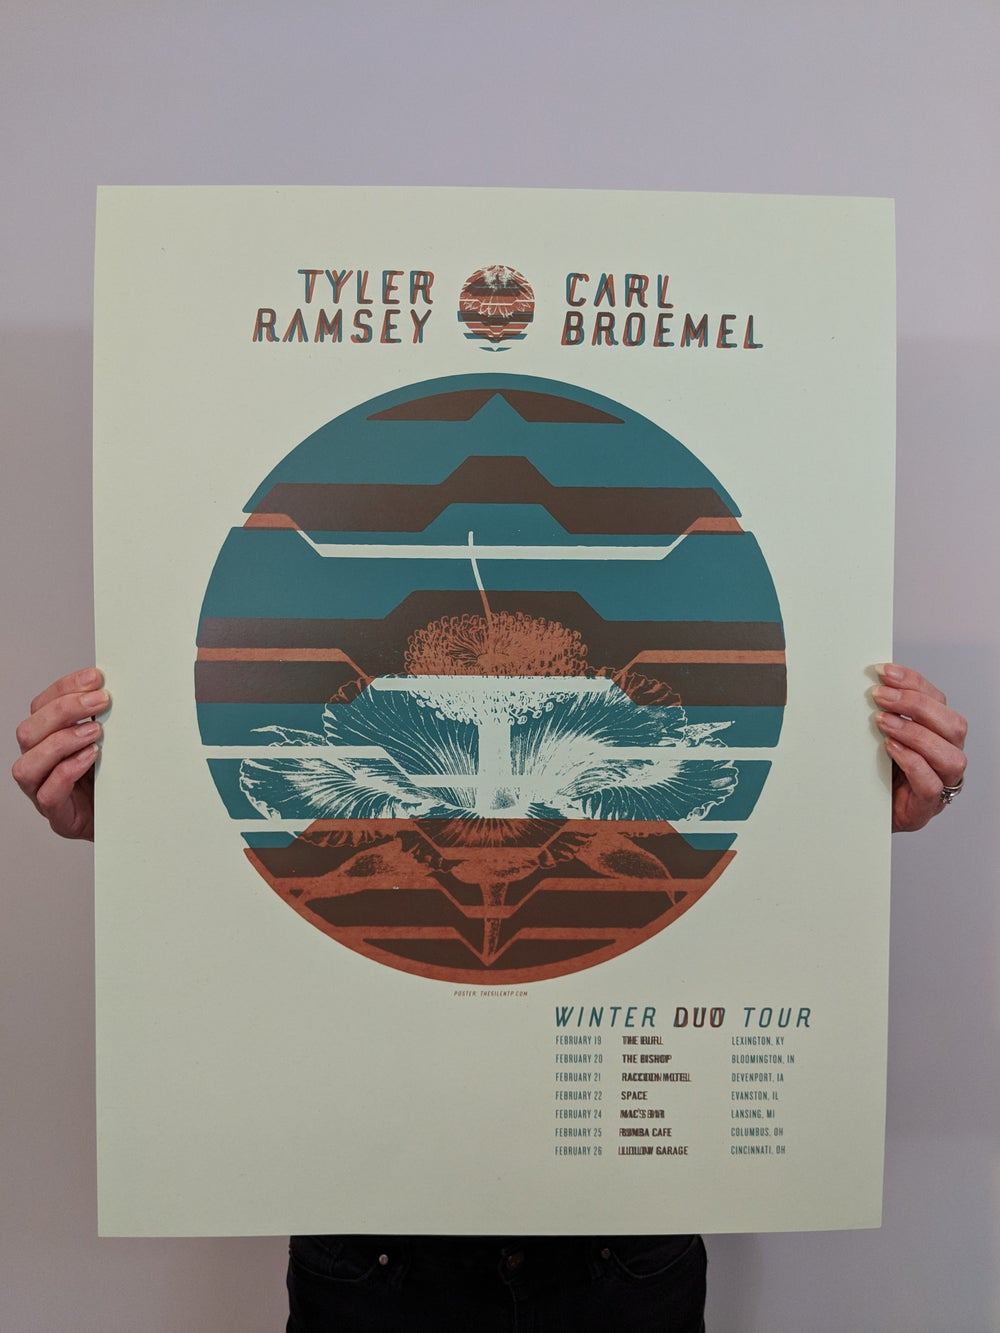 Tyler Ramsey and Carl Broemel Tour Poster